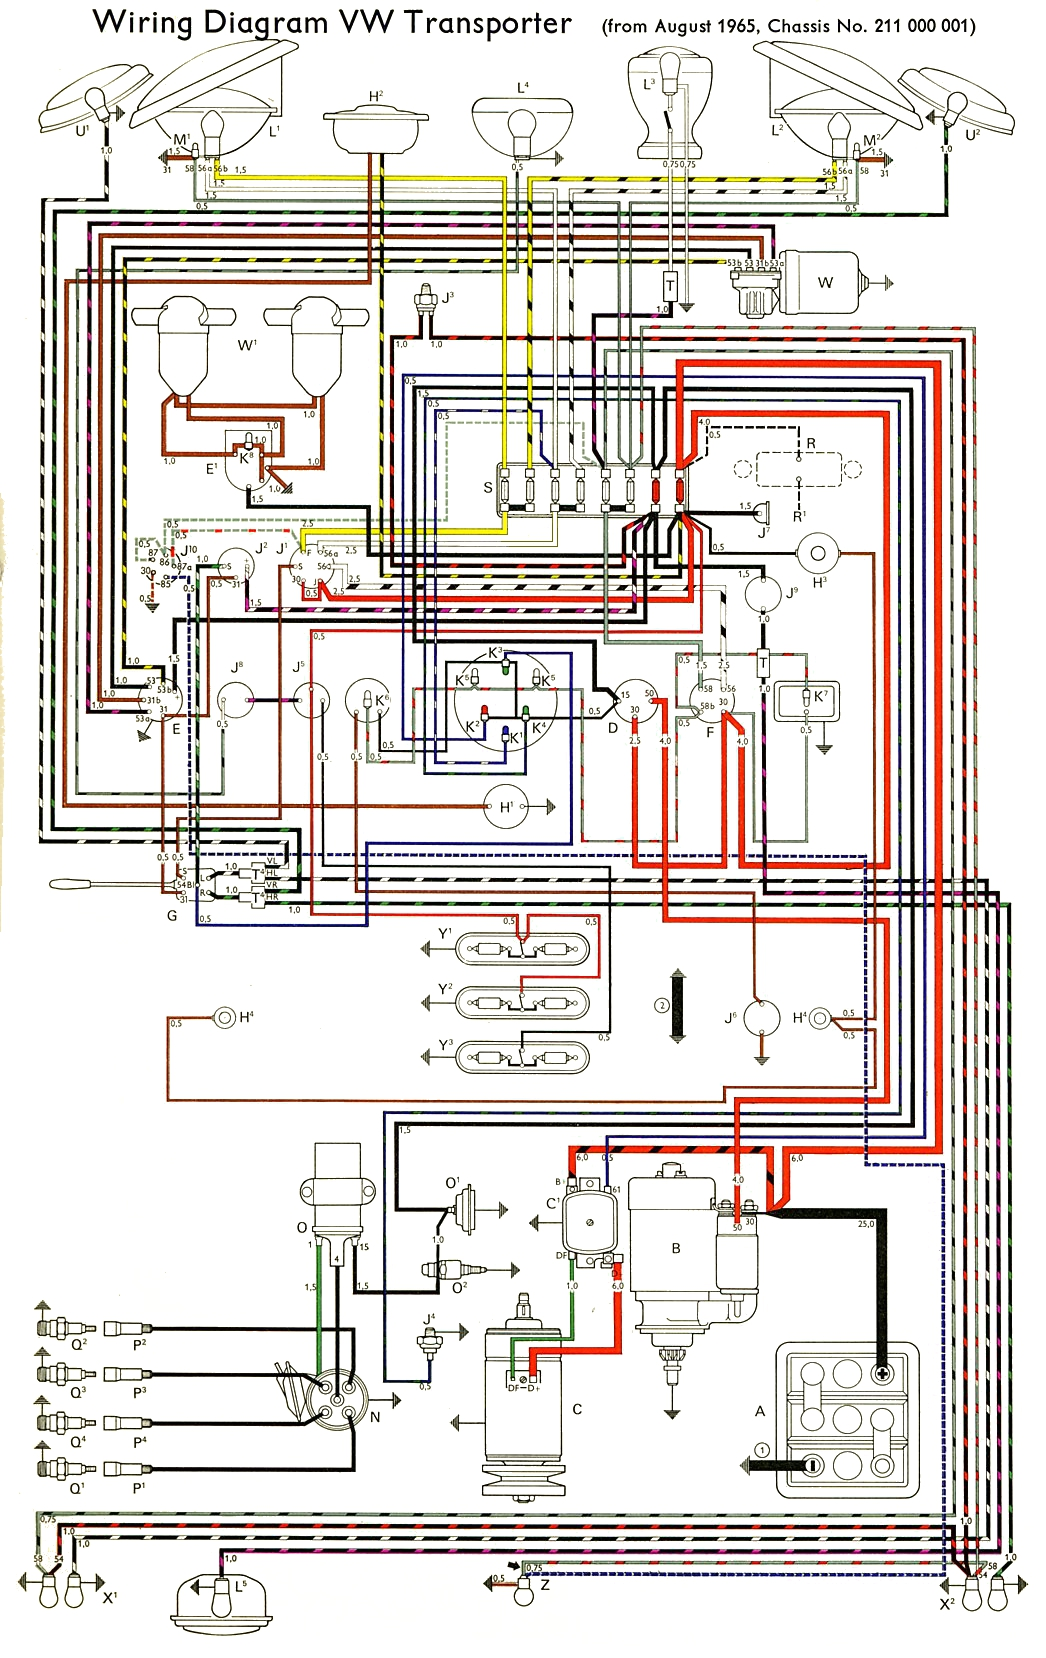 bus_66 thesamba com type 2 wiring diagrams Wiring Schematics for Johnson Outboards at suagrazia.org